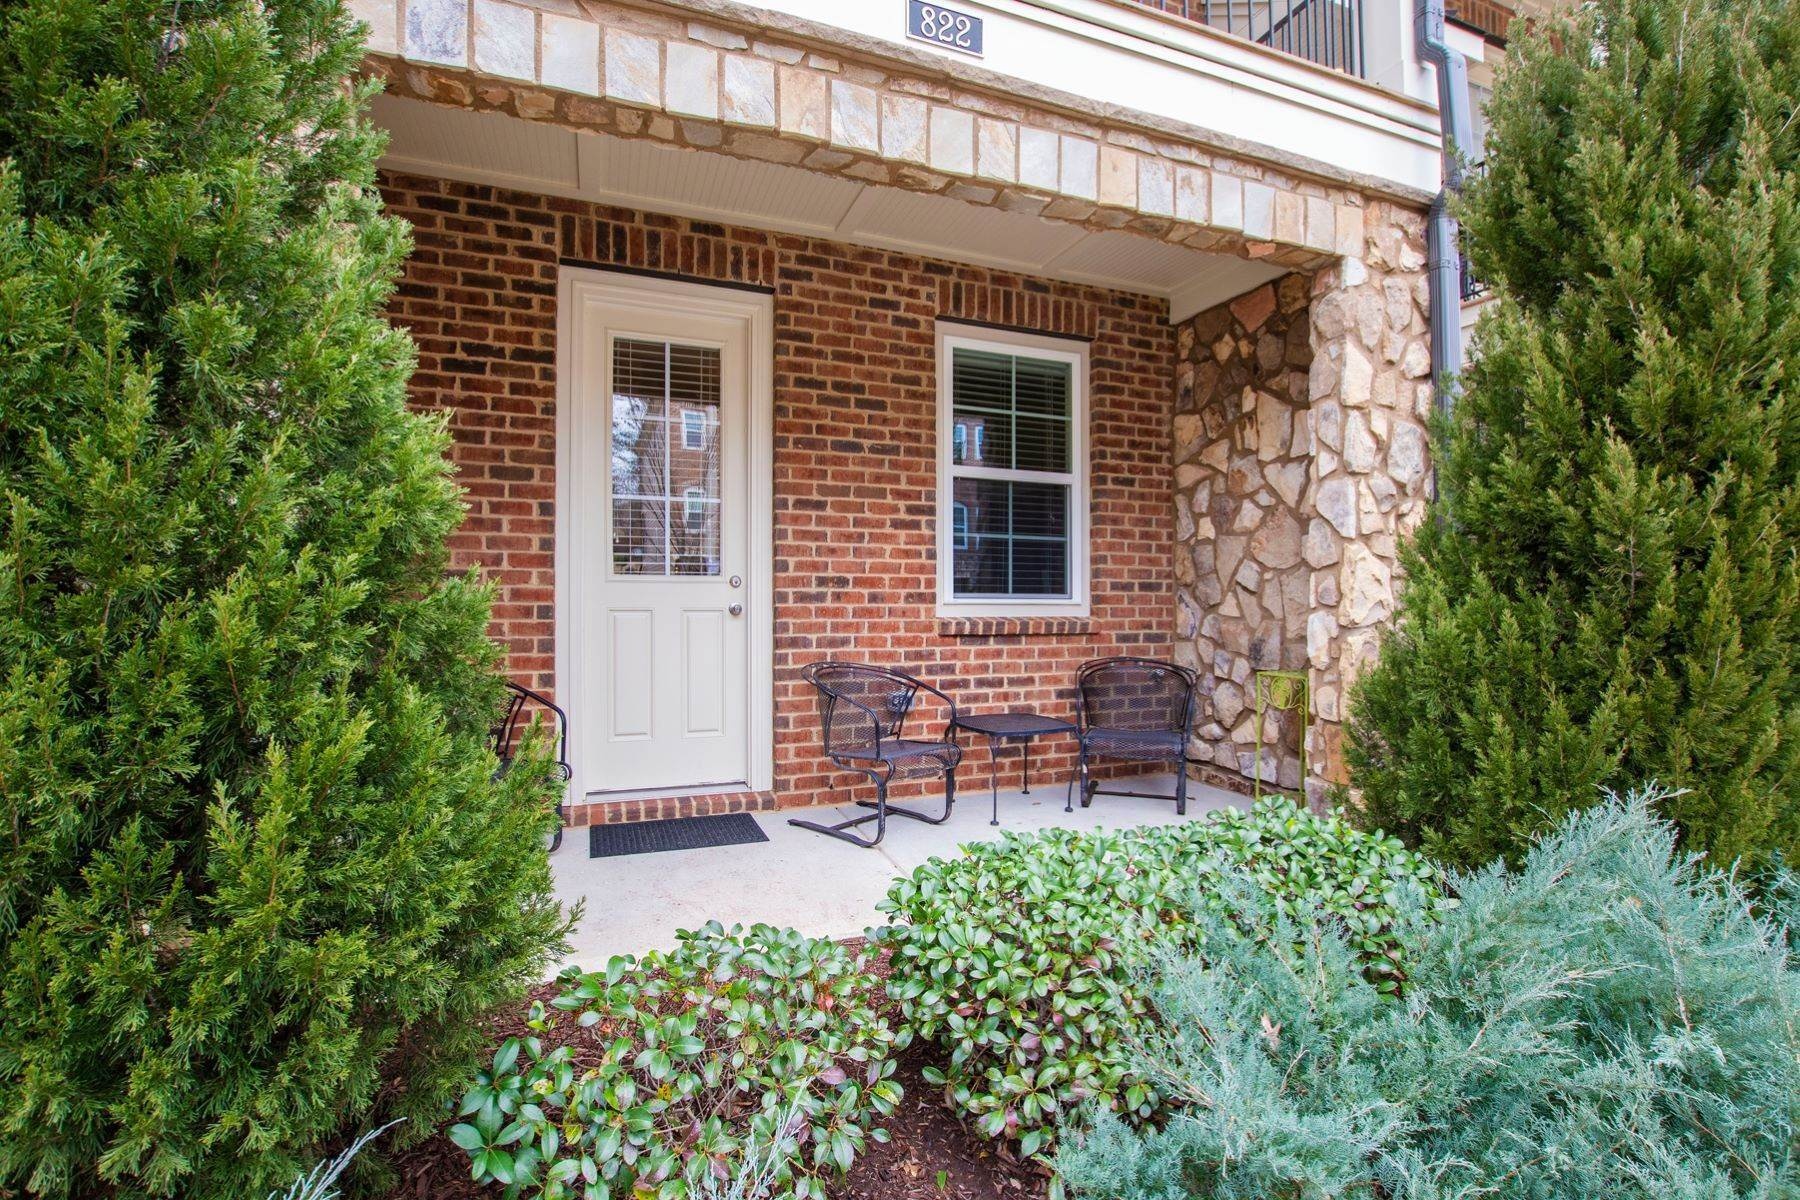 20. townhouses for Sale at 822 Bankston Woods Way Raleigh, North Carolina 27609 United States